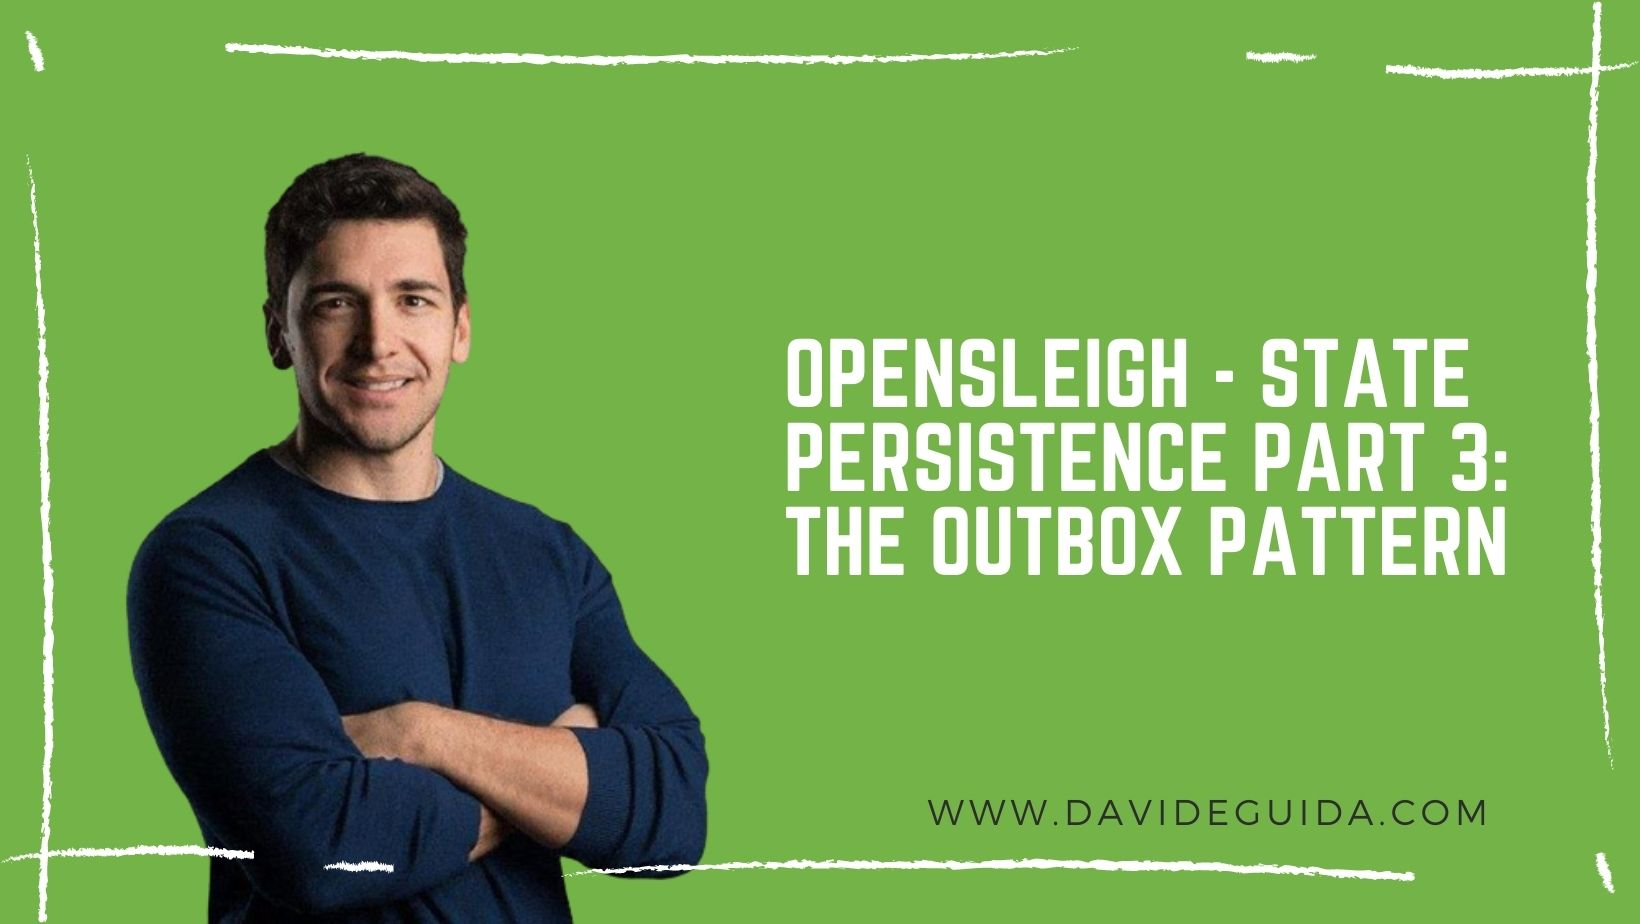 OpenSleigh – state persistence part 3: the outbox pattern